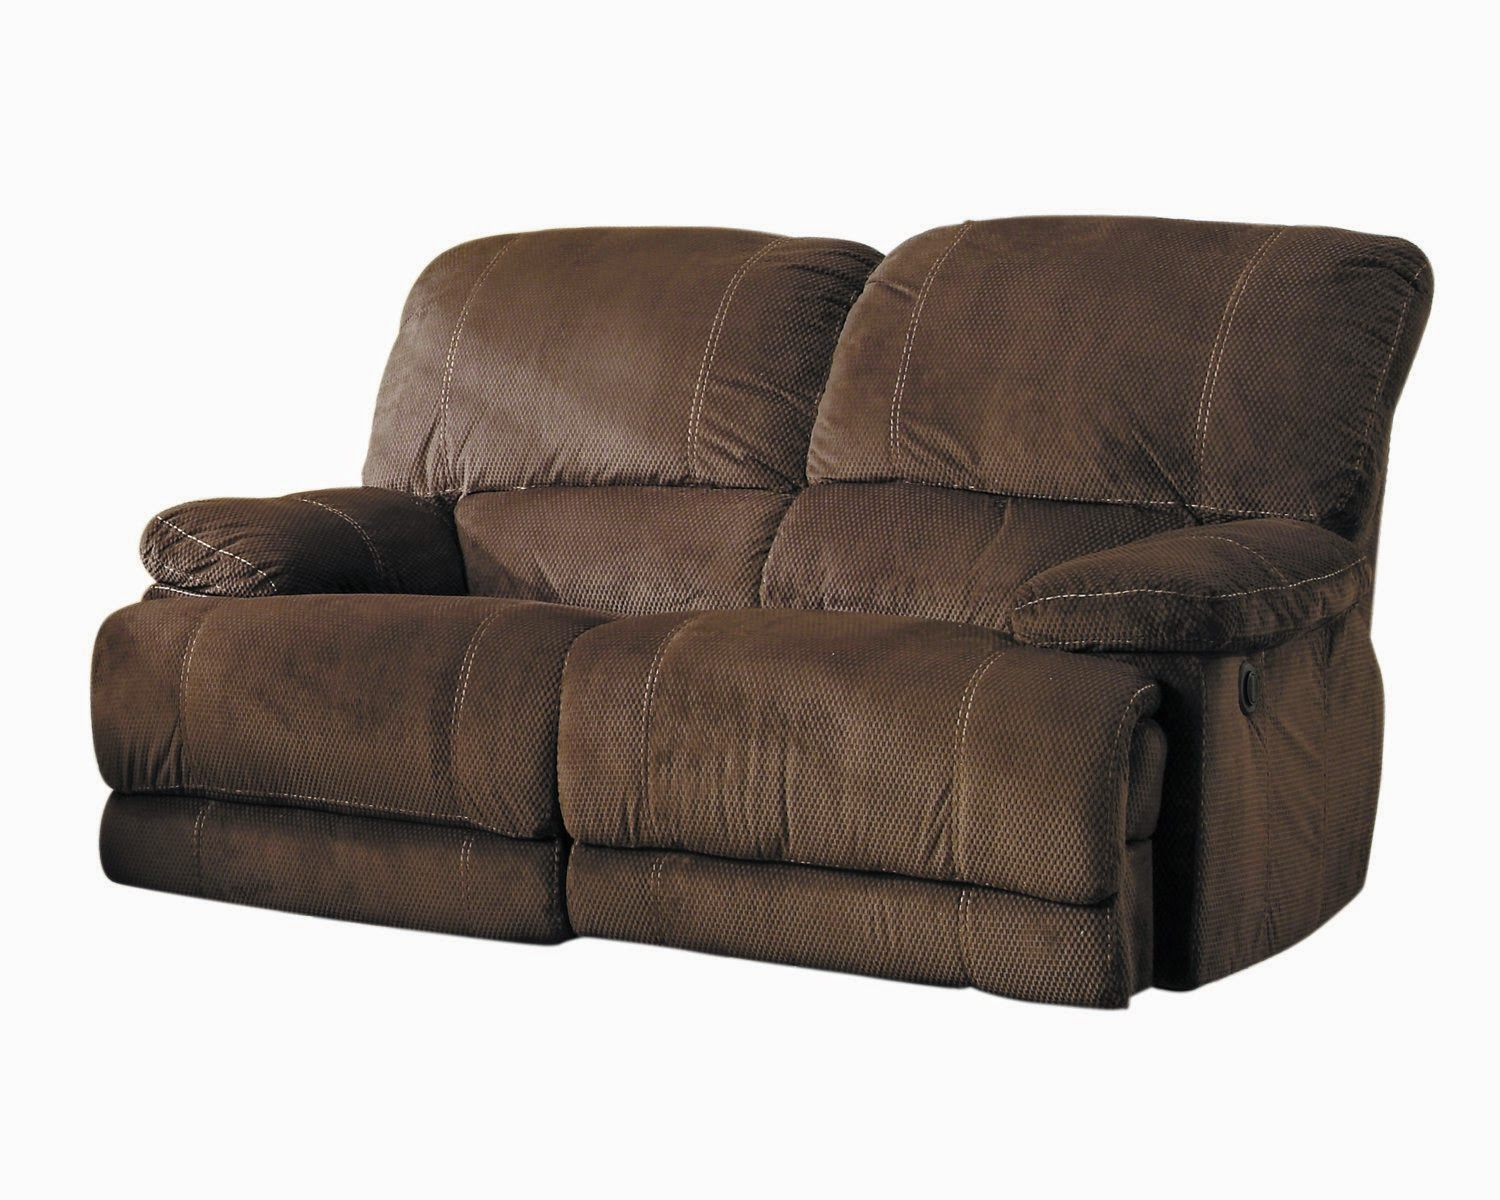 Cheap reclining sofas sale march 2015 Reclining loveseat sale